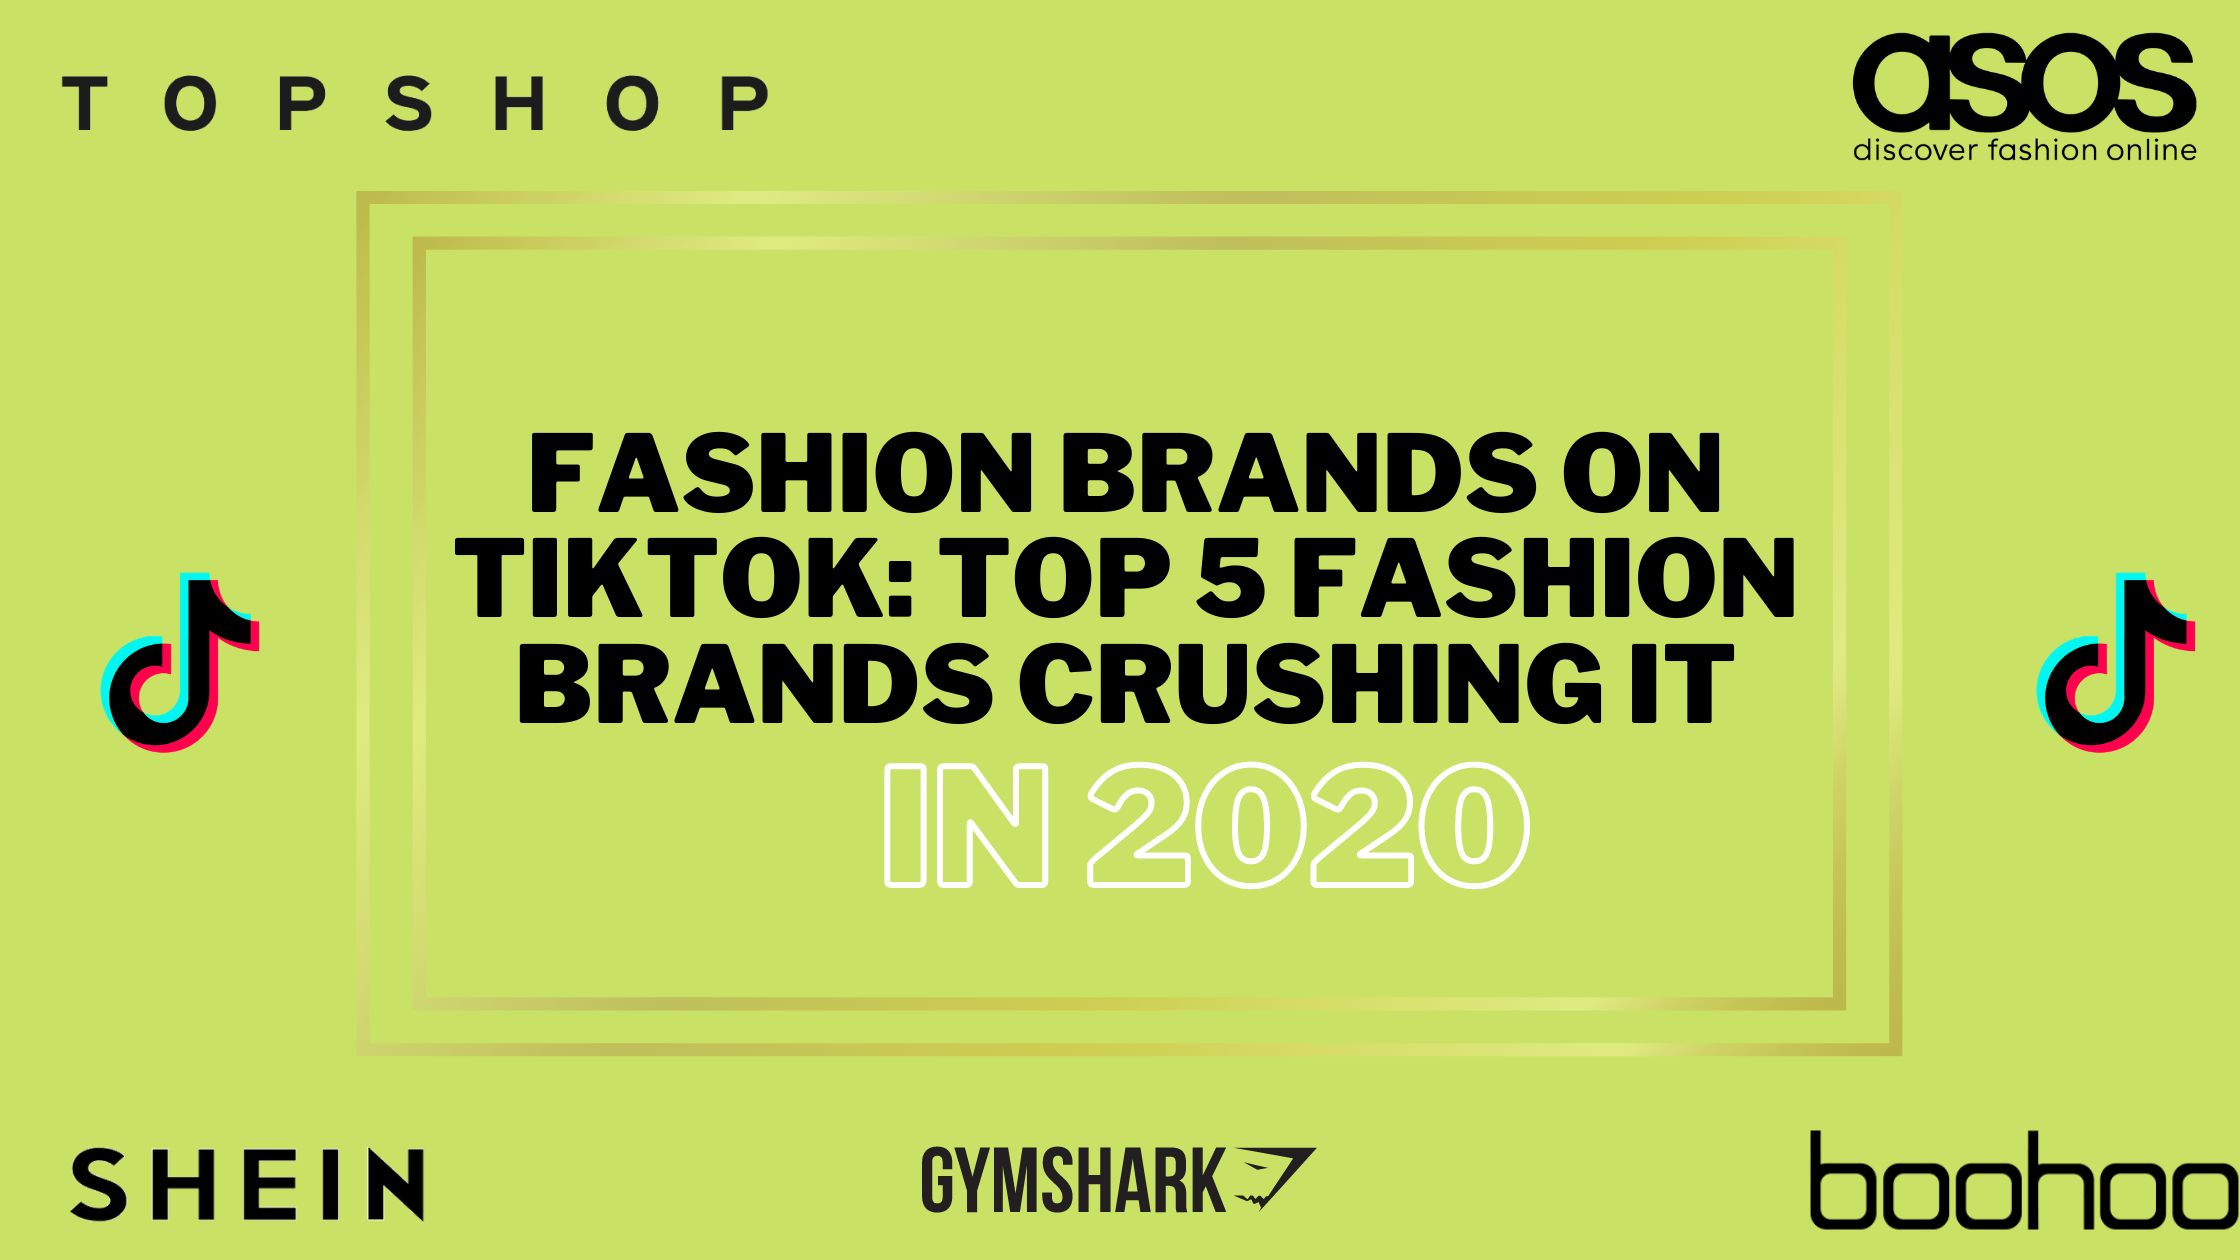 Fashion Brands On TikTok: The Top 5 Brands Crushing It in 2020